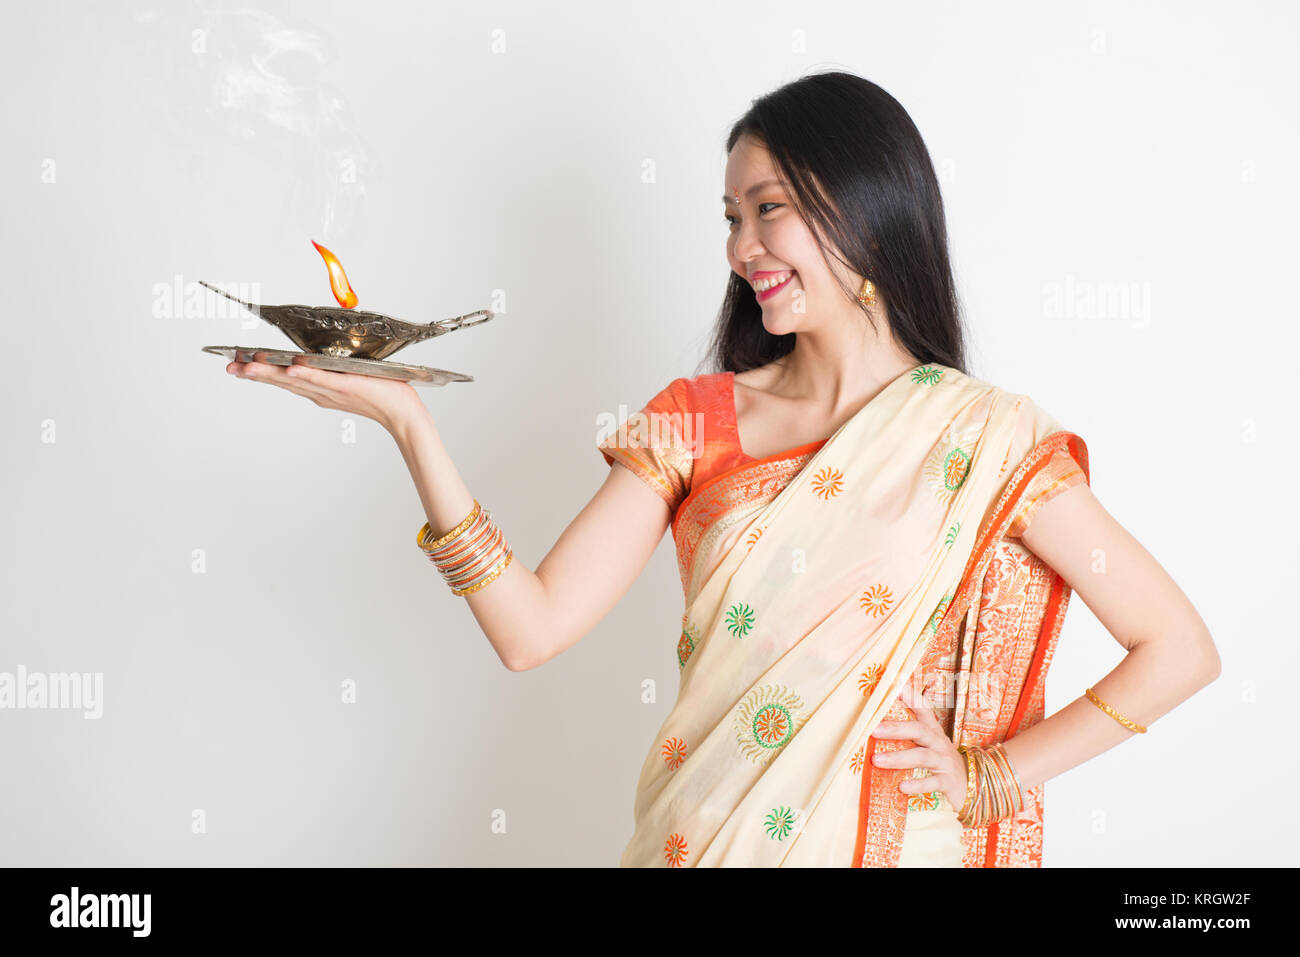 Portrait Girl Holding Oil Lamp Stock Photos  for Girl Holding Lamp  49jwn